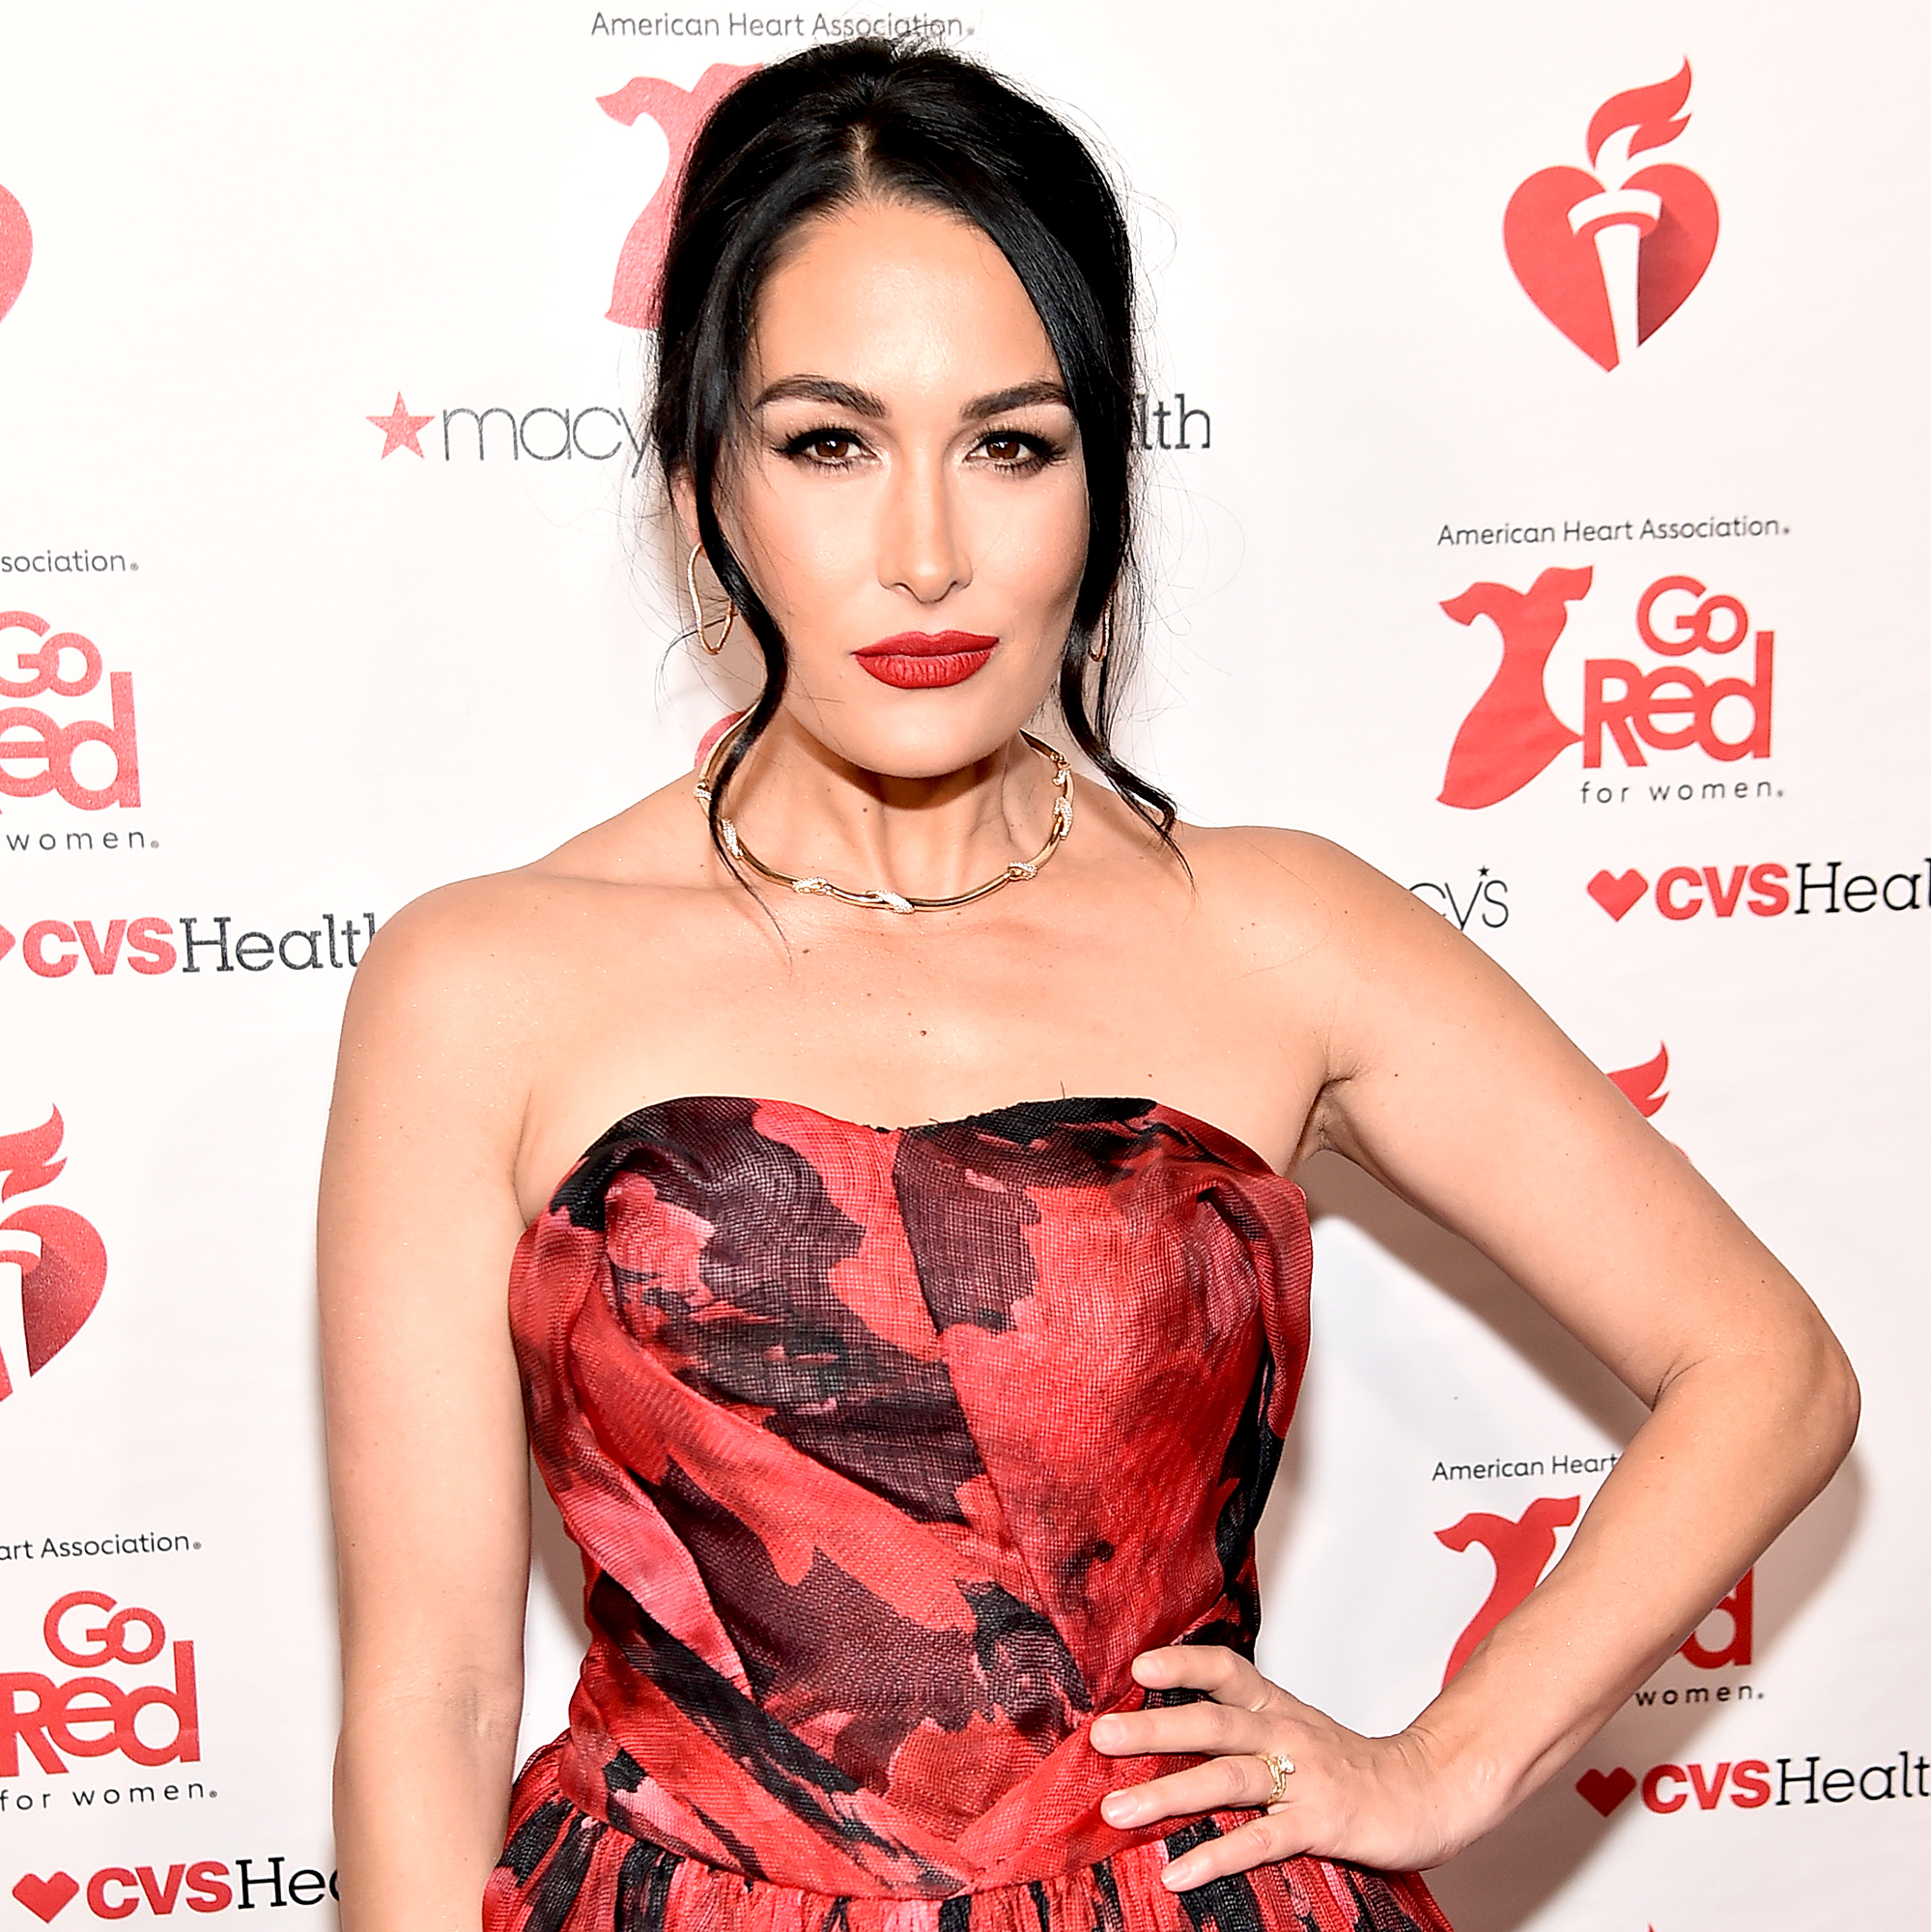 Brie-Bella-Reveals-She-Struggled-With-Depression